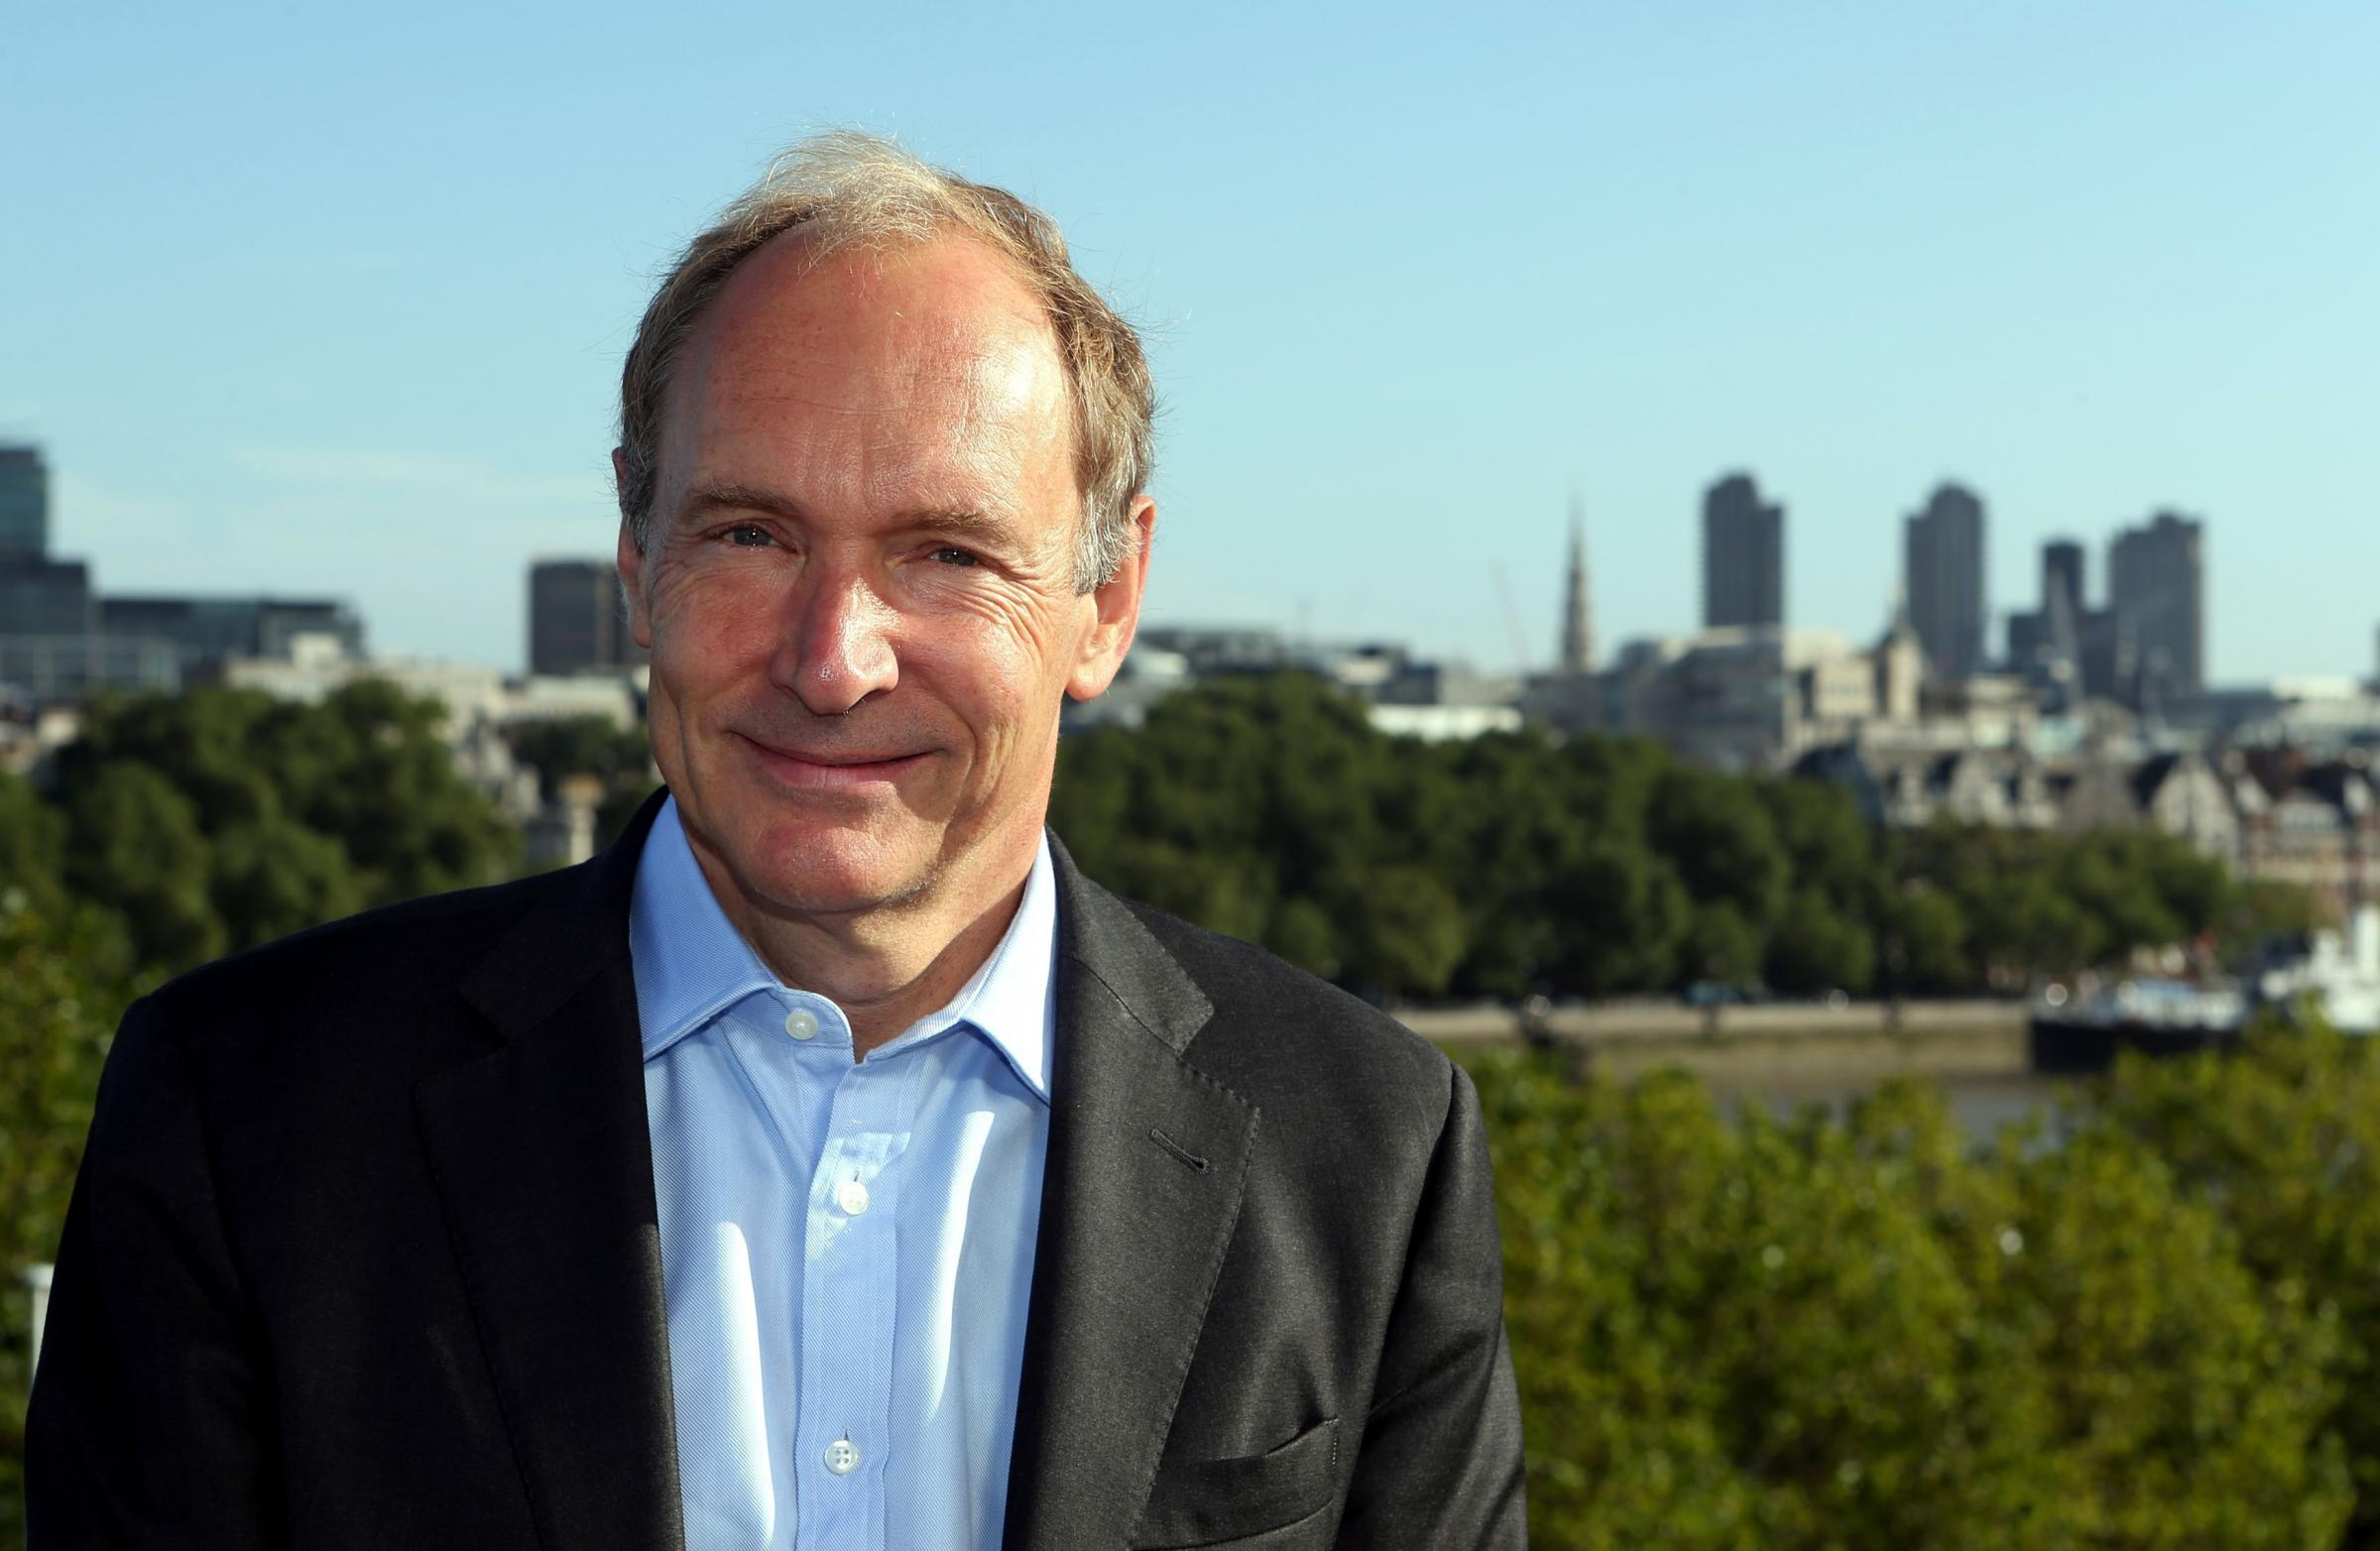 The world wide web inventor Sir Tim Berners-Lee